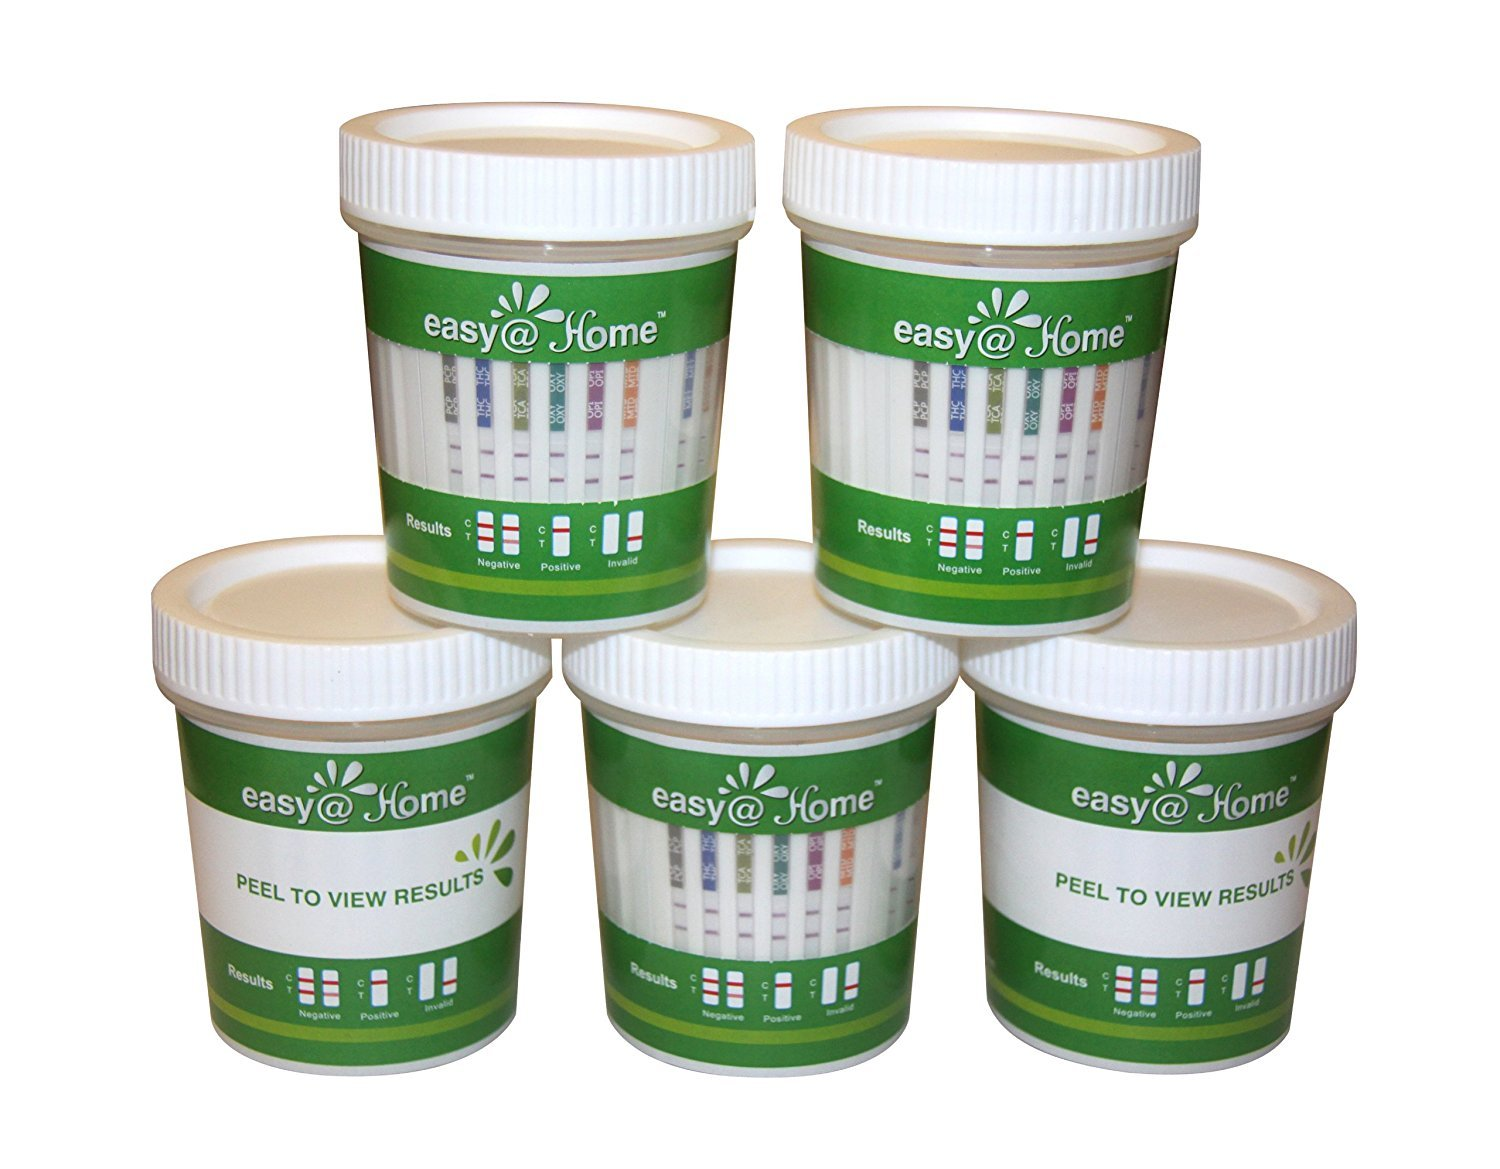 5, 10, 15, 25, 50 and 100 Pack Easy@Home Drug Test Cup for 5 Popular Drug Tests Marijuana (THC),Amphetamine (AMP),Cocaine (COC), Methamphetamine (MET), Opiate (OPI 2000) - #ECDOA-254